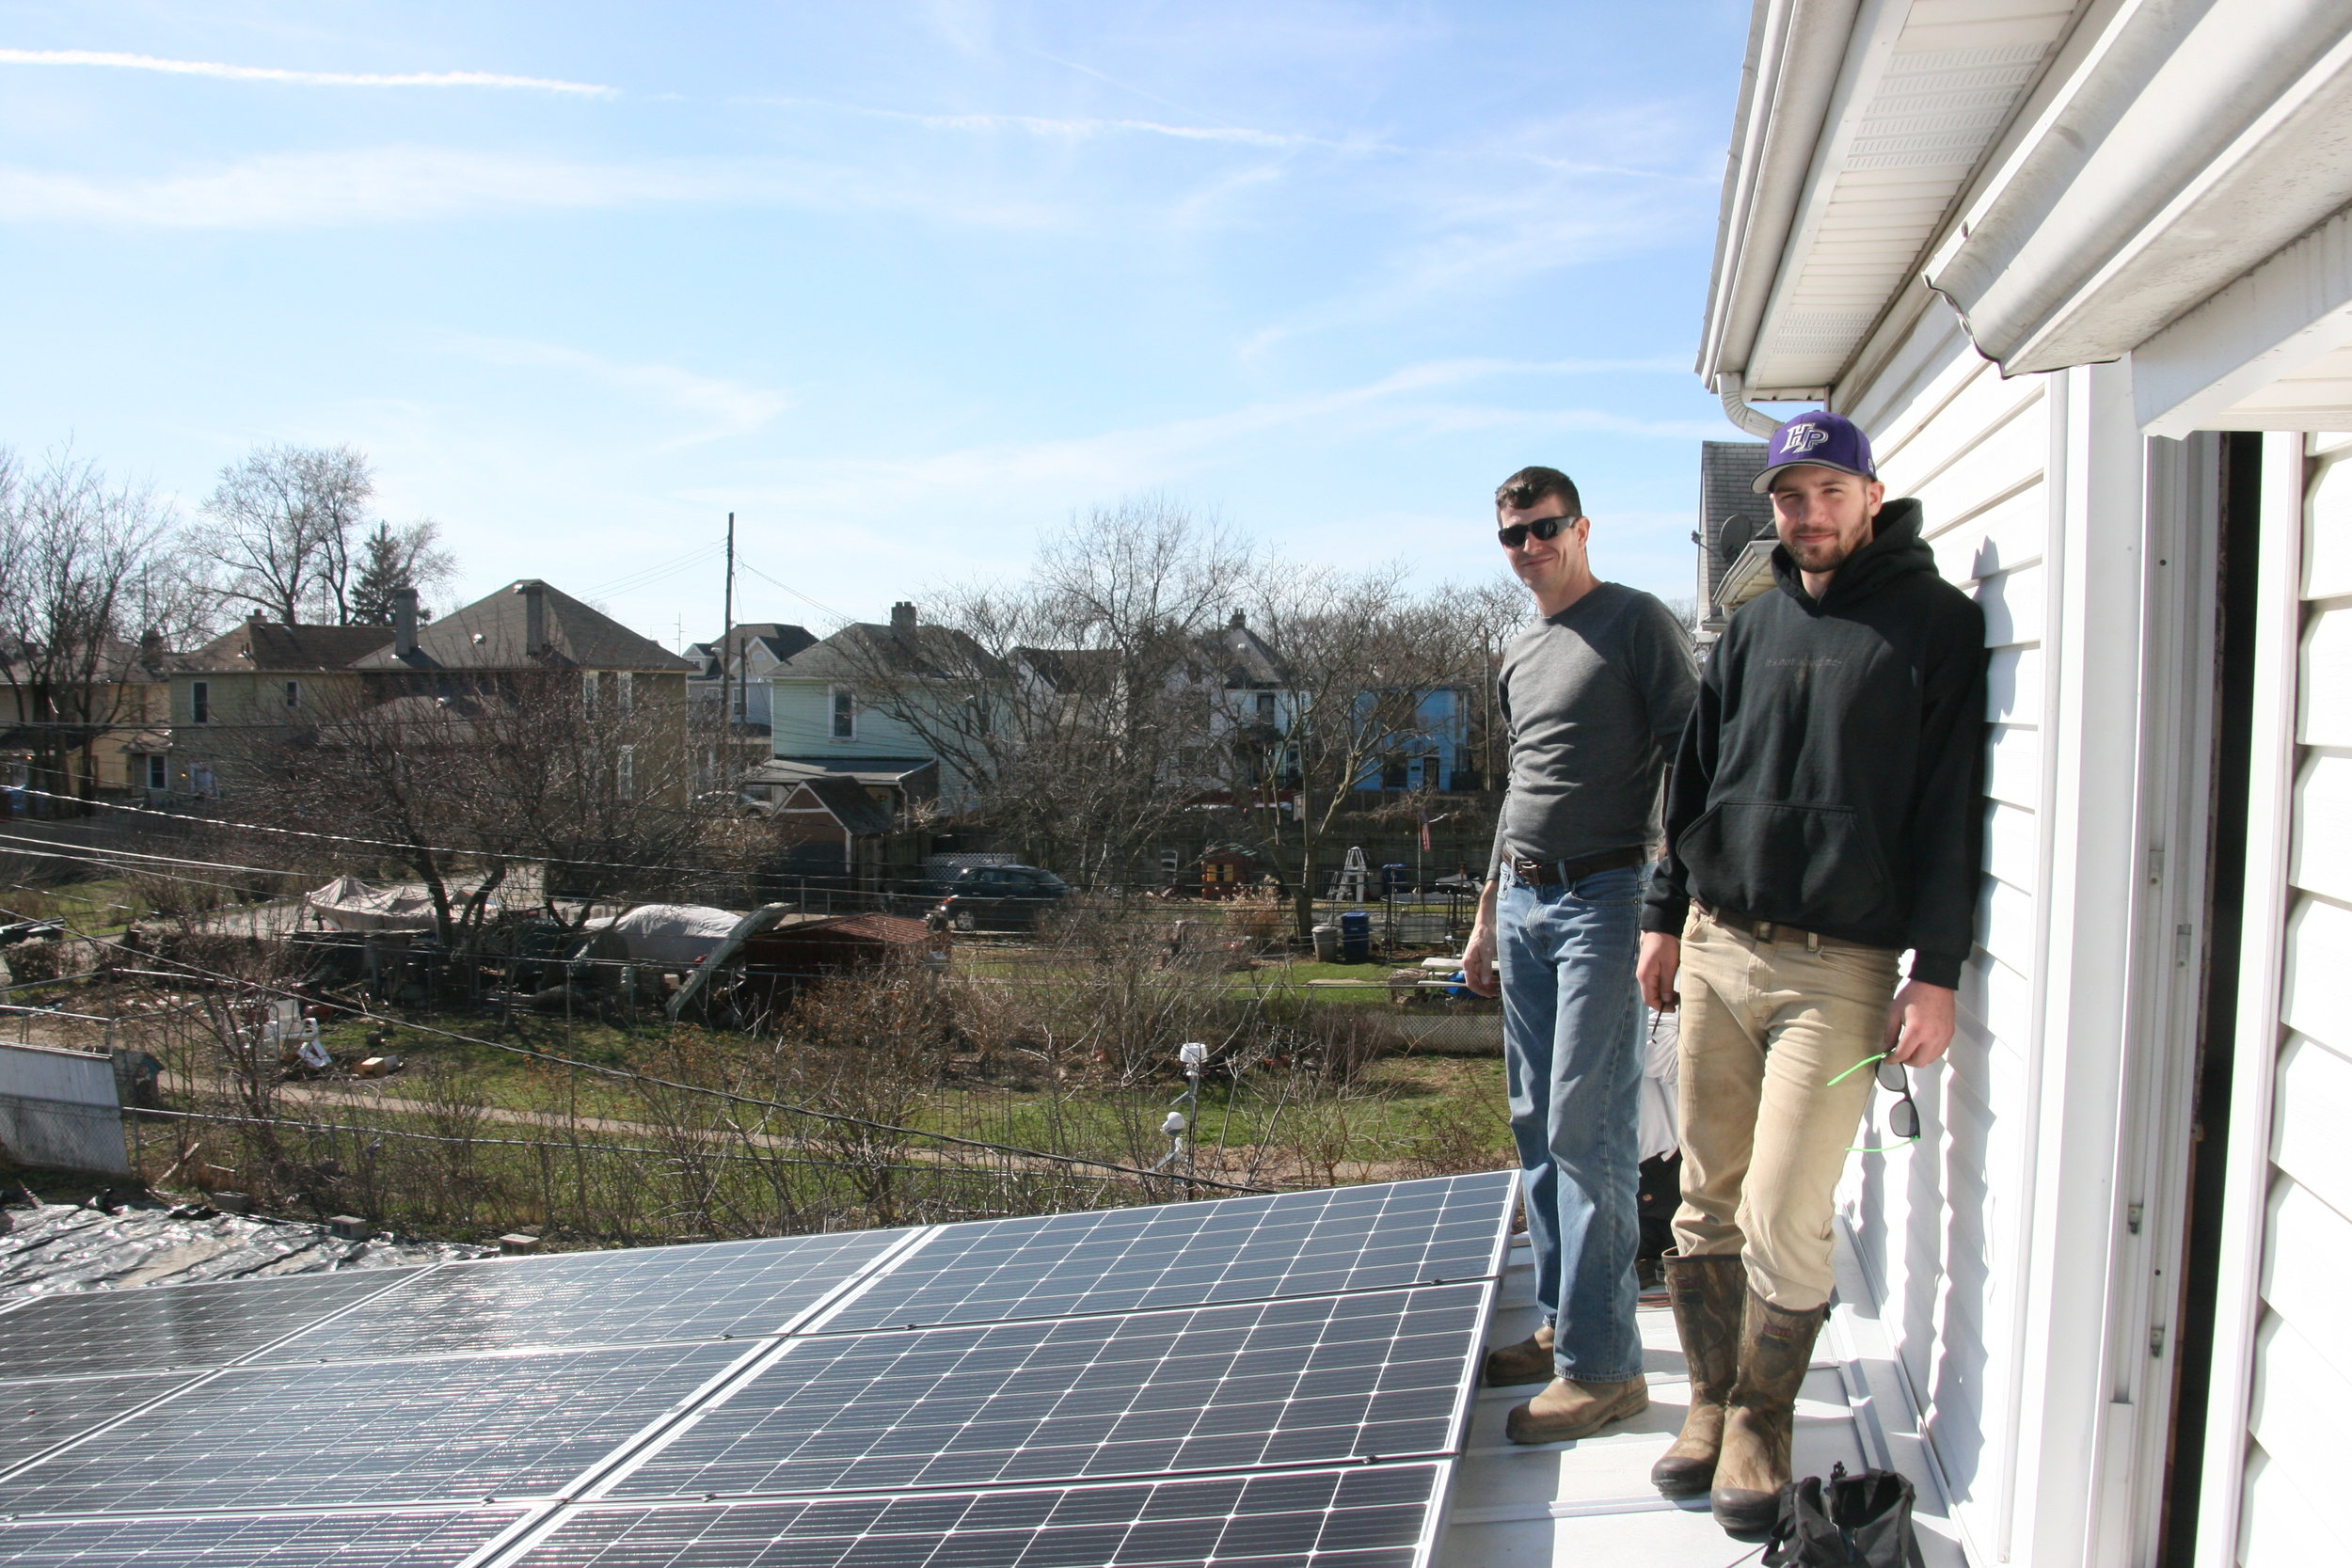 About - Franklinton Community Solar is a neighborhood-based nonprofit organization that was formed in 2015 by a small group of individuals who live, work, and worship in Franklinton. Through the years, Franklinton Community Solar has developed key partnerships with Design Energy and The Refuge to bring solar power and its benefits to all in the neighborhood. Franklinton Community Solar continues to connect with neighbors, landlords, businesses, faith communities, and other nonprofit organizations to expand Franklinton's network of solar electric systems.